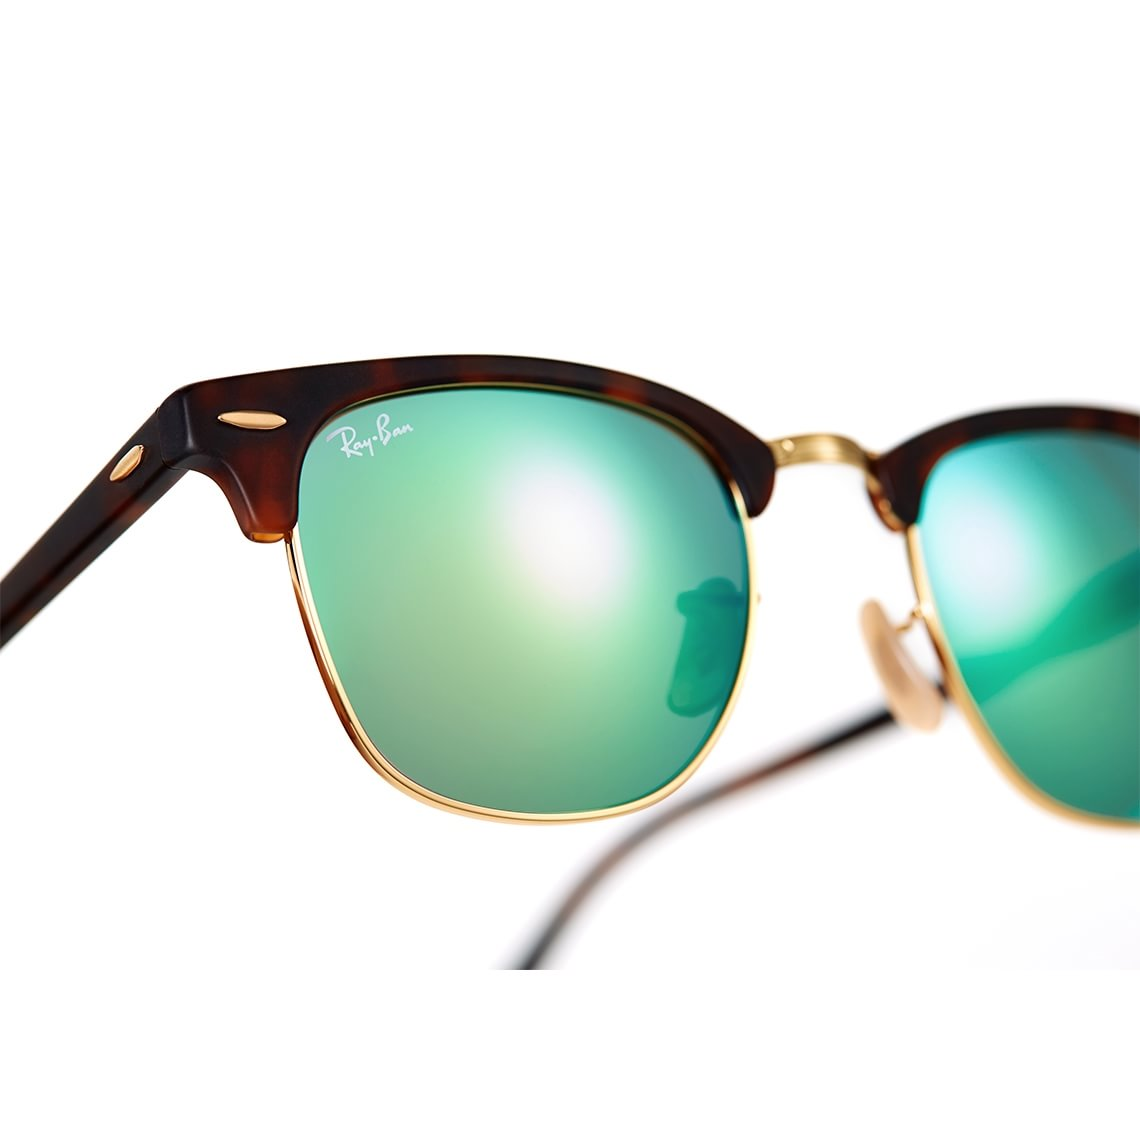 Ray-Ban Clubmaster RB3016 114519 51